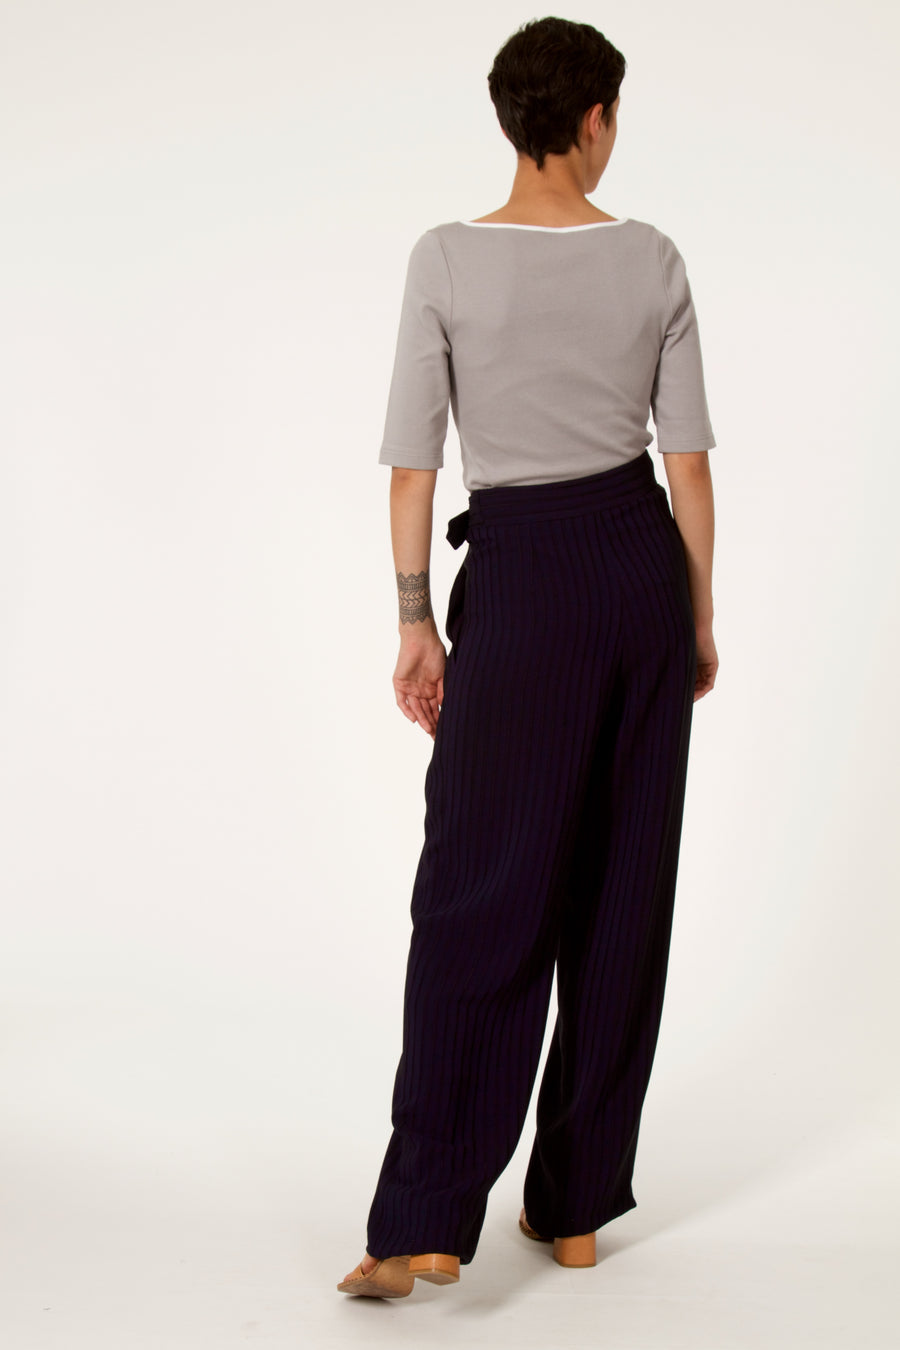 ALORS Navy Pants